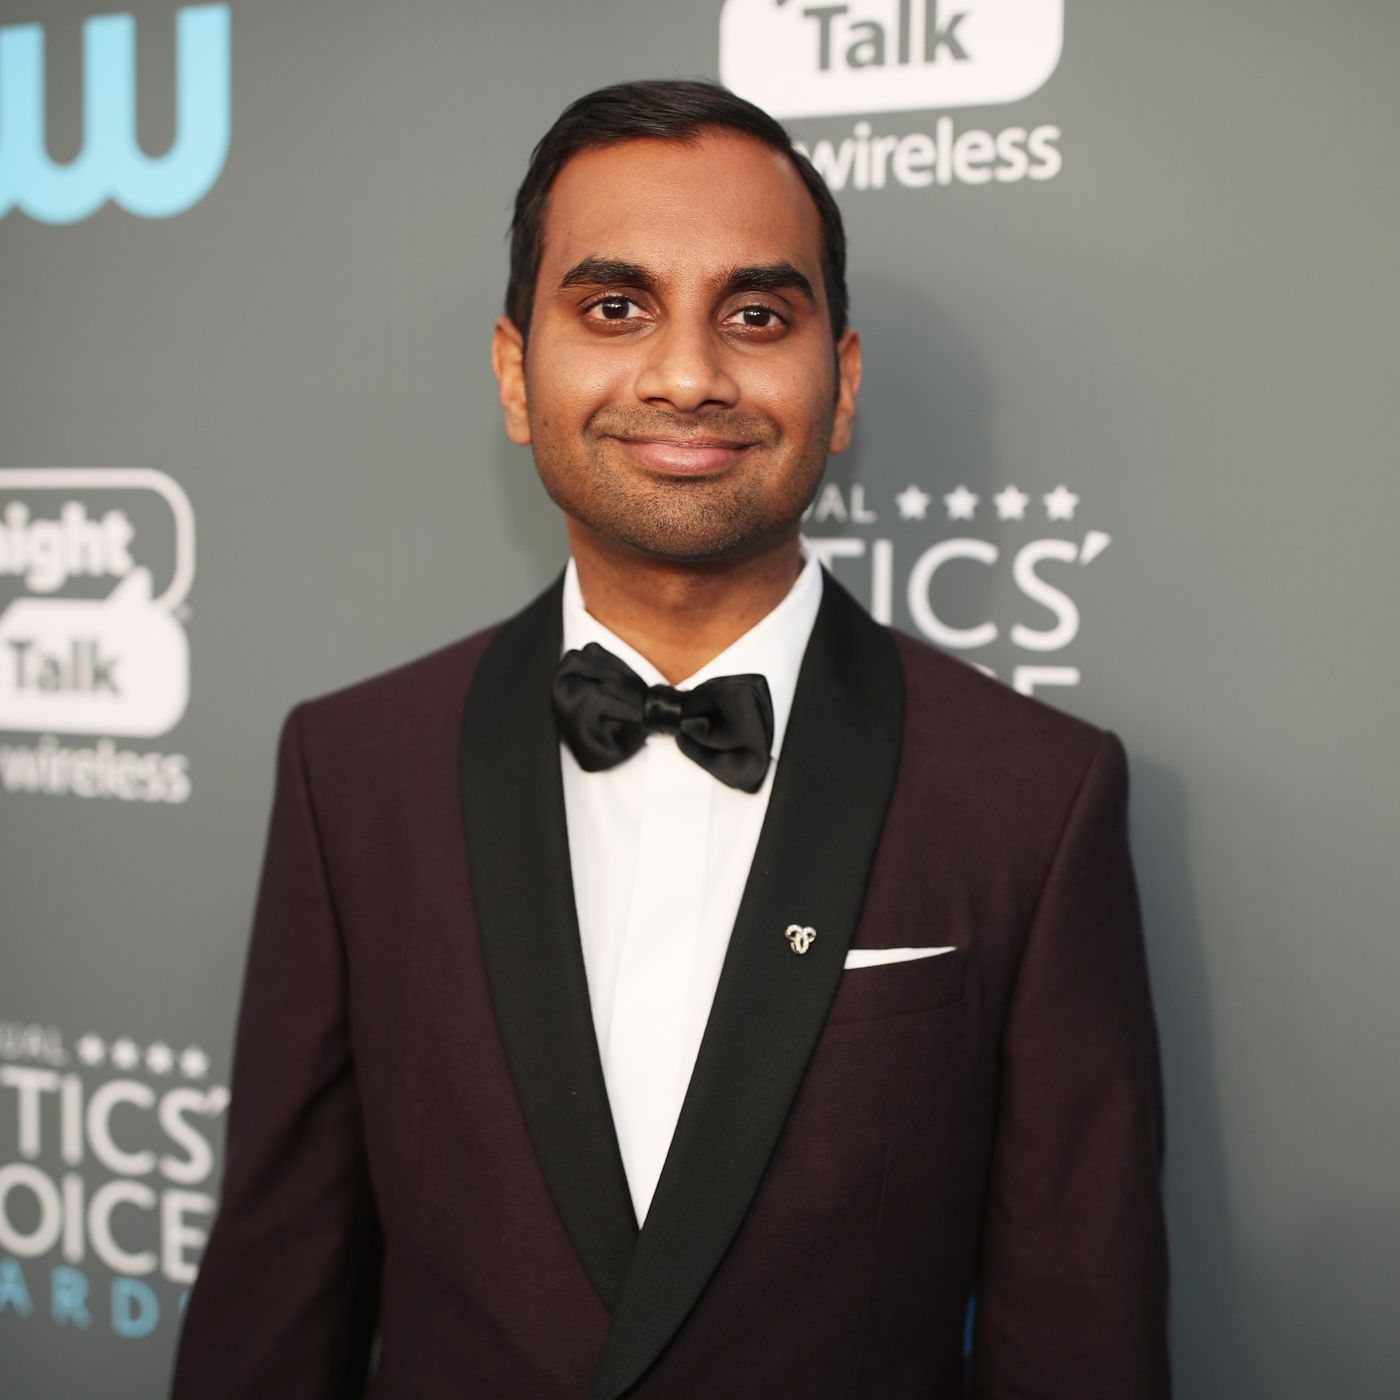 Aziz Ansari responds to allegations of sexual misconduct - The Verge